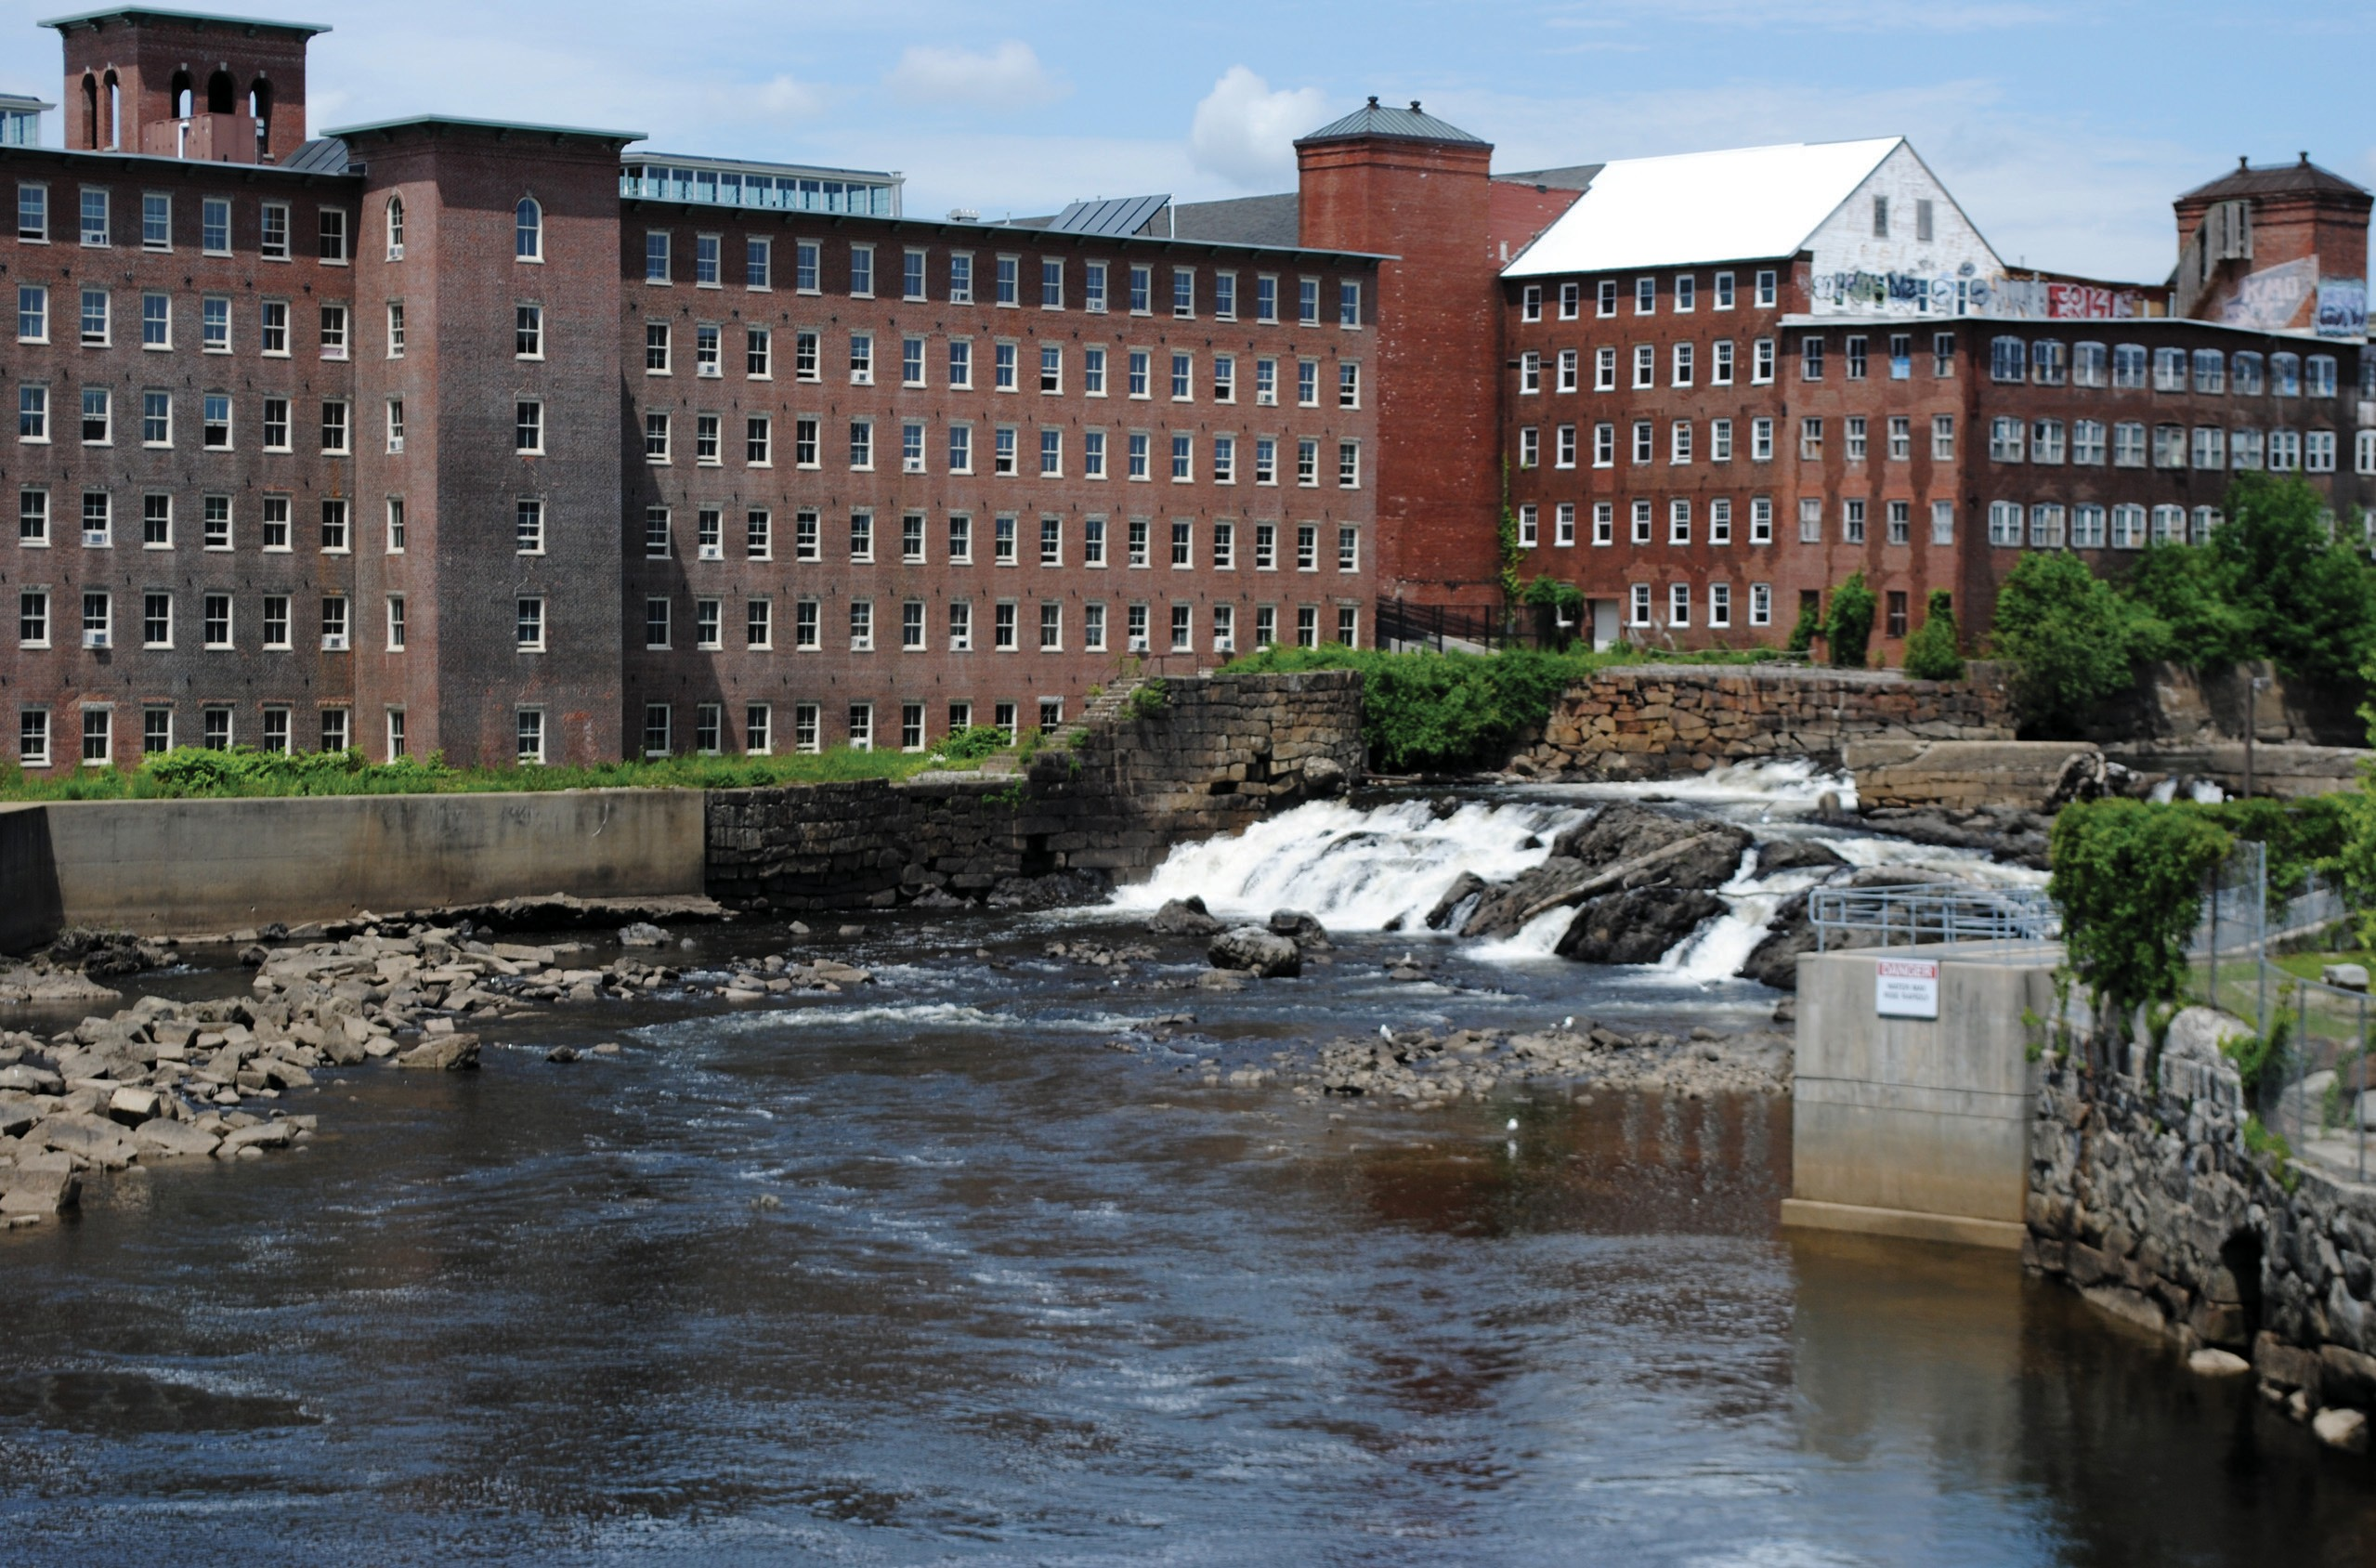 The Saco River is pictured from the RiverWalk pedestrian bridge in this July file photo. A law that will take effect next week will allow the RiverWalk to be cantilevered over a portion of the river, connecting the pedestrian bridge to a park that will be added to the former Maine Energy Recovery Company site.